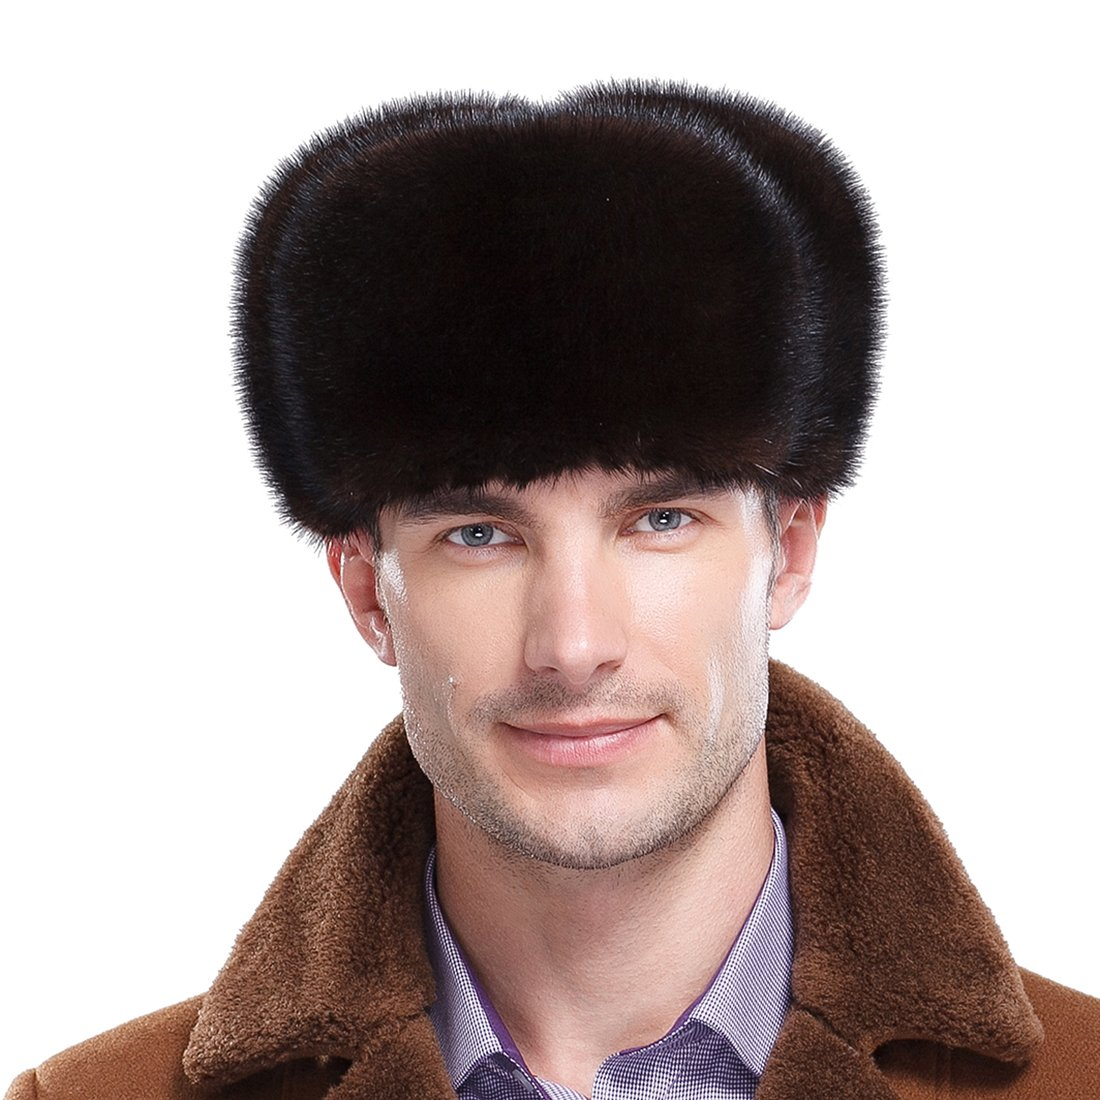 URSFUR Premium Mink Fur Russian Ushanka Trapper Hats (One Size Fits All, Natural Color) by URSFUR